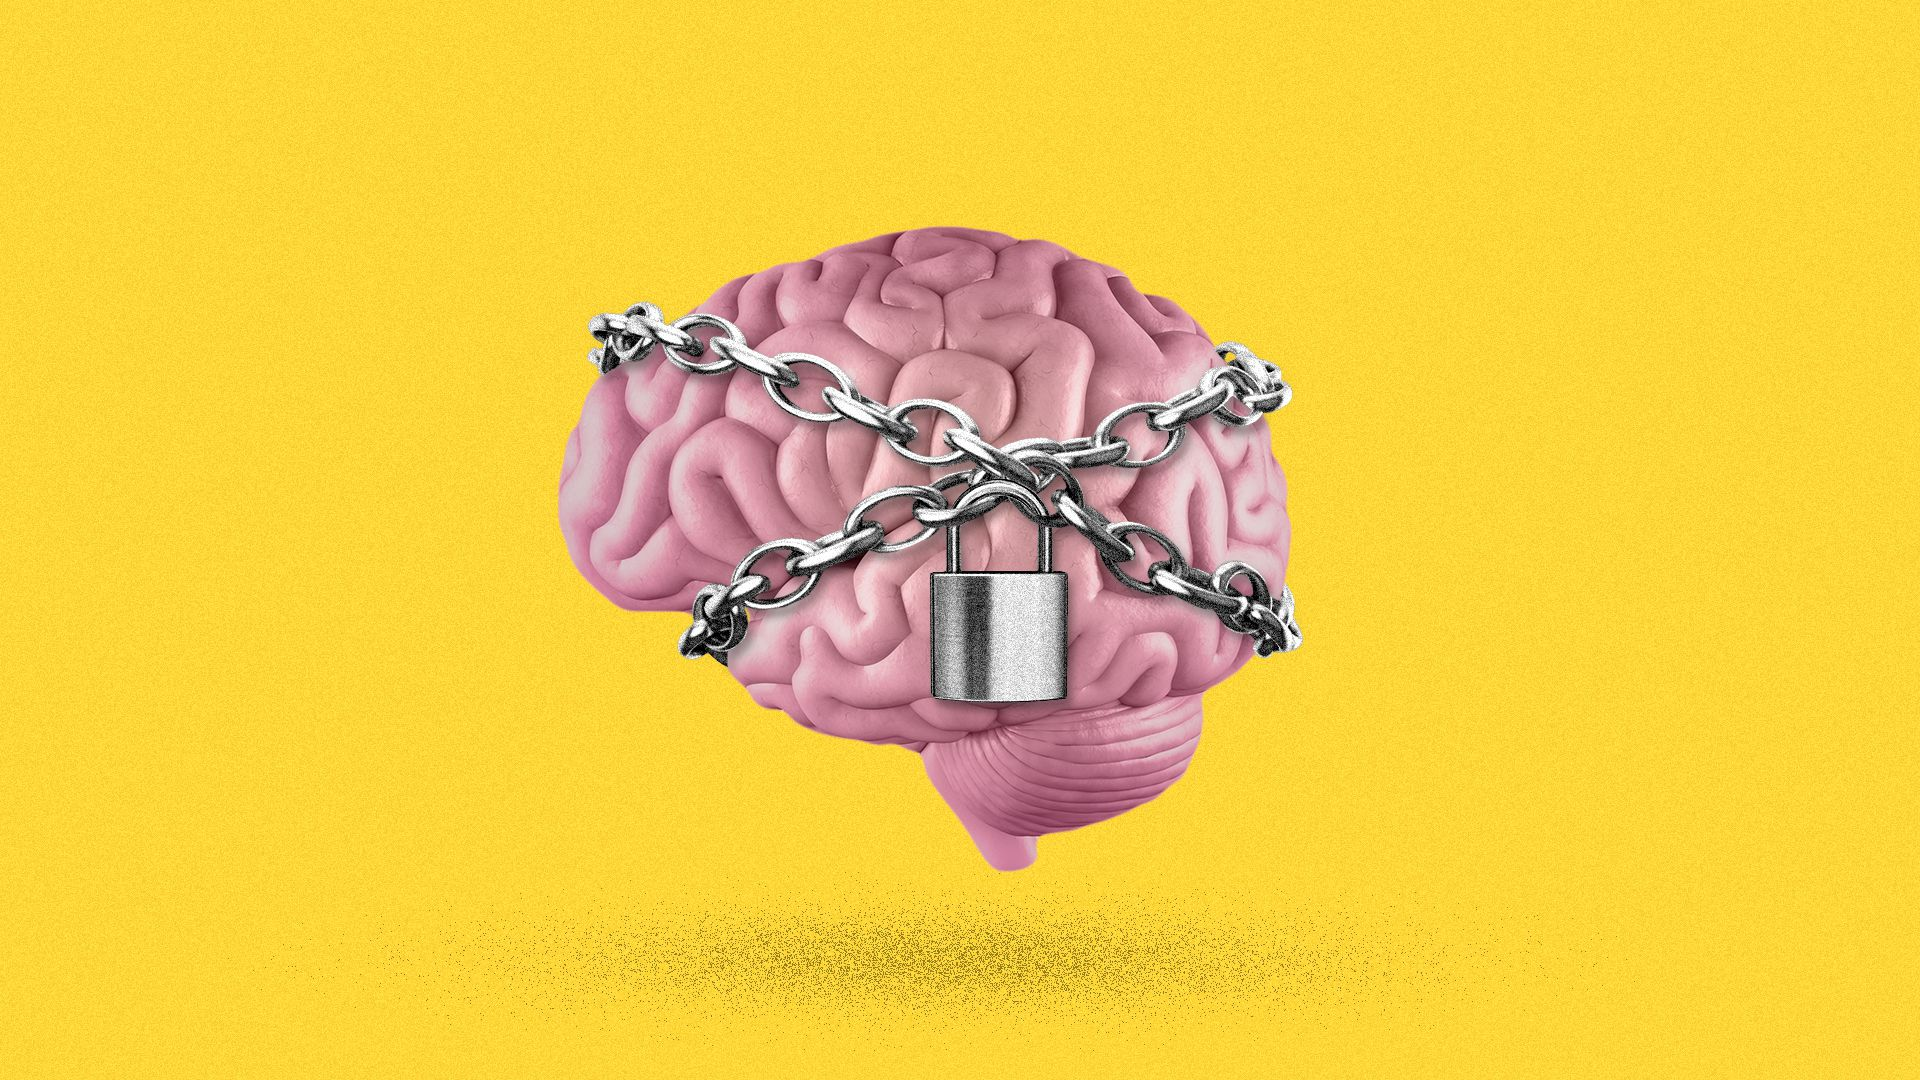 Illustration of a brain wrapped up in a lock and chains.